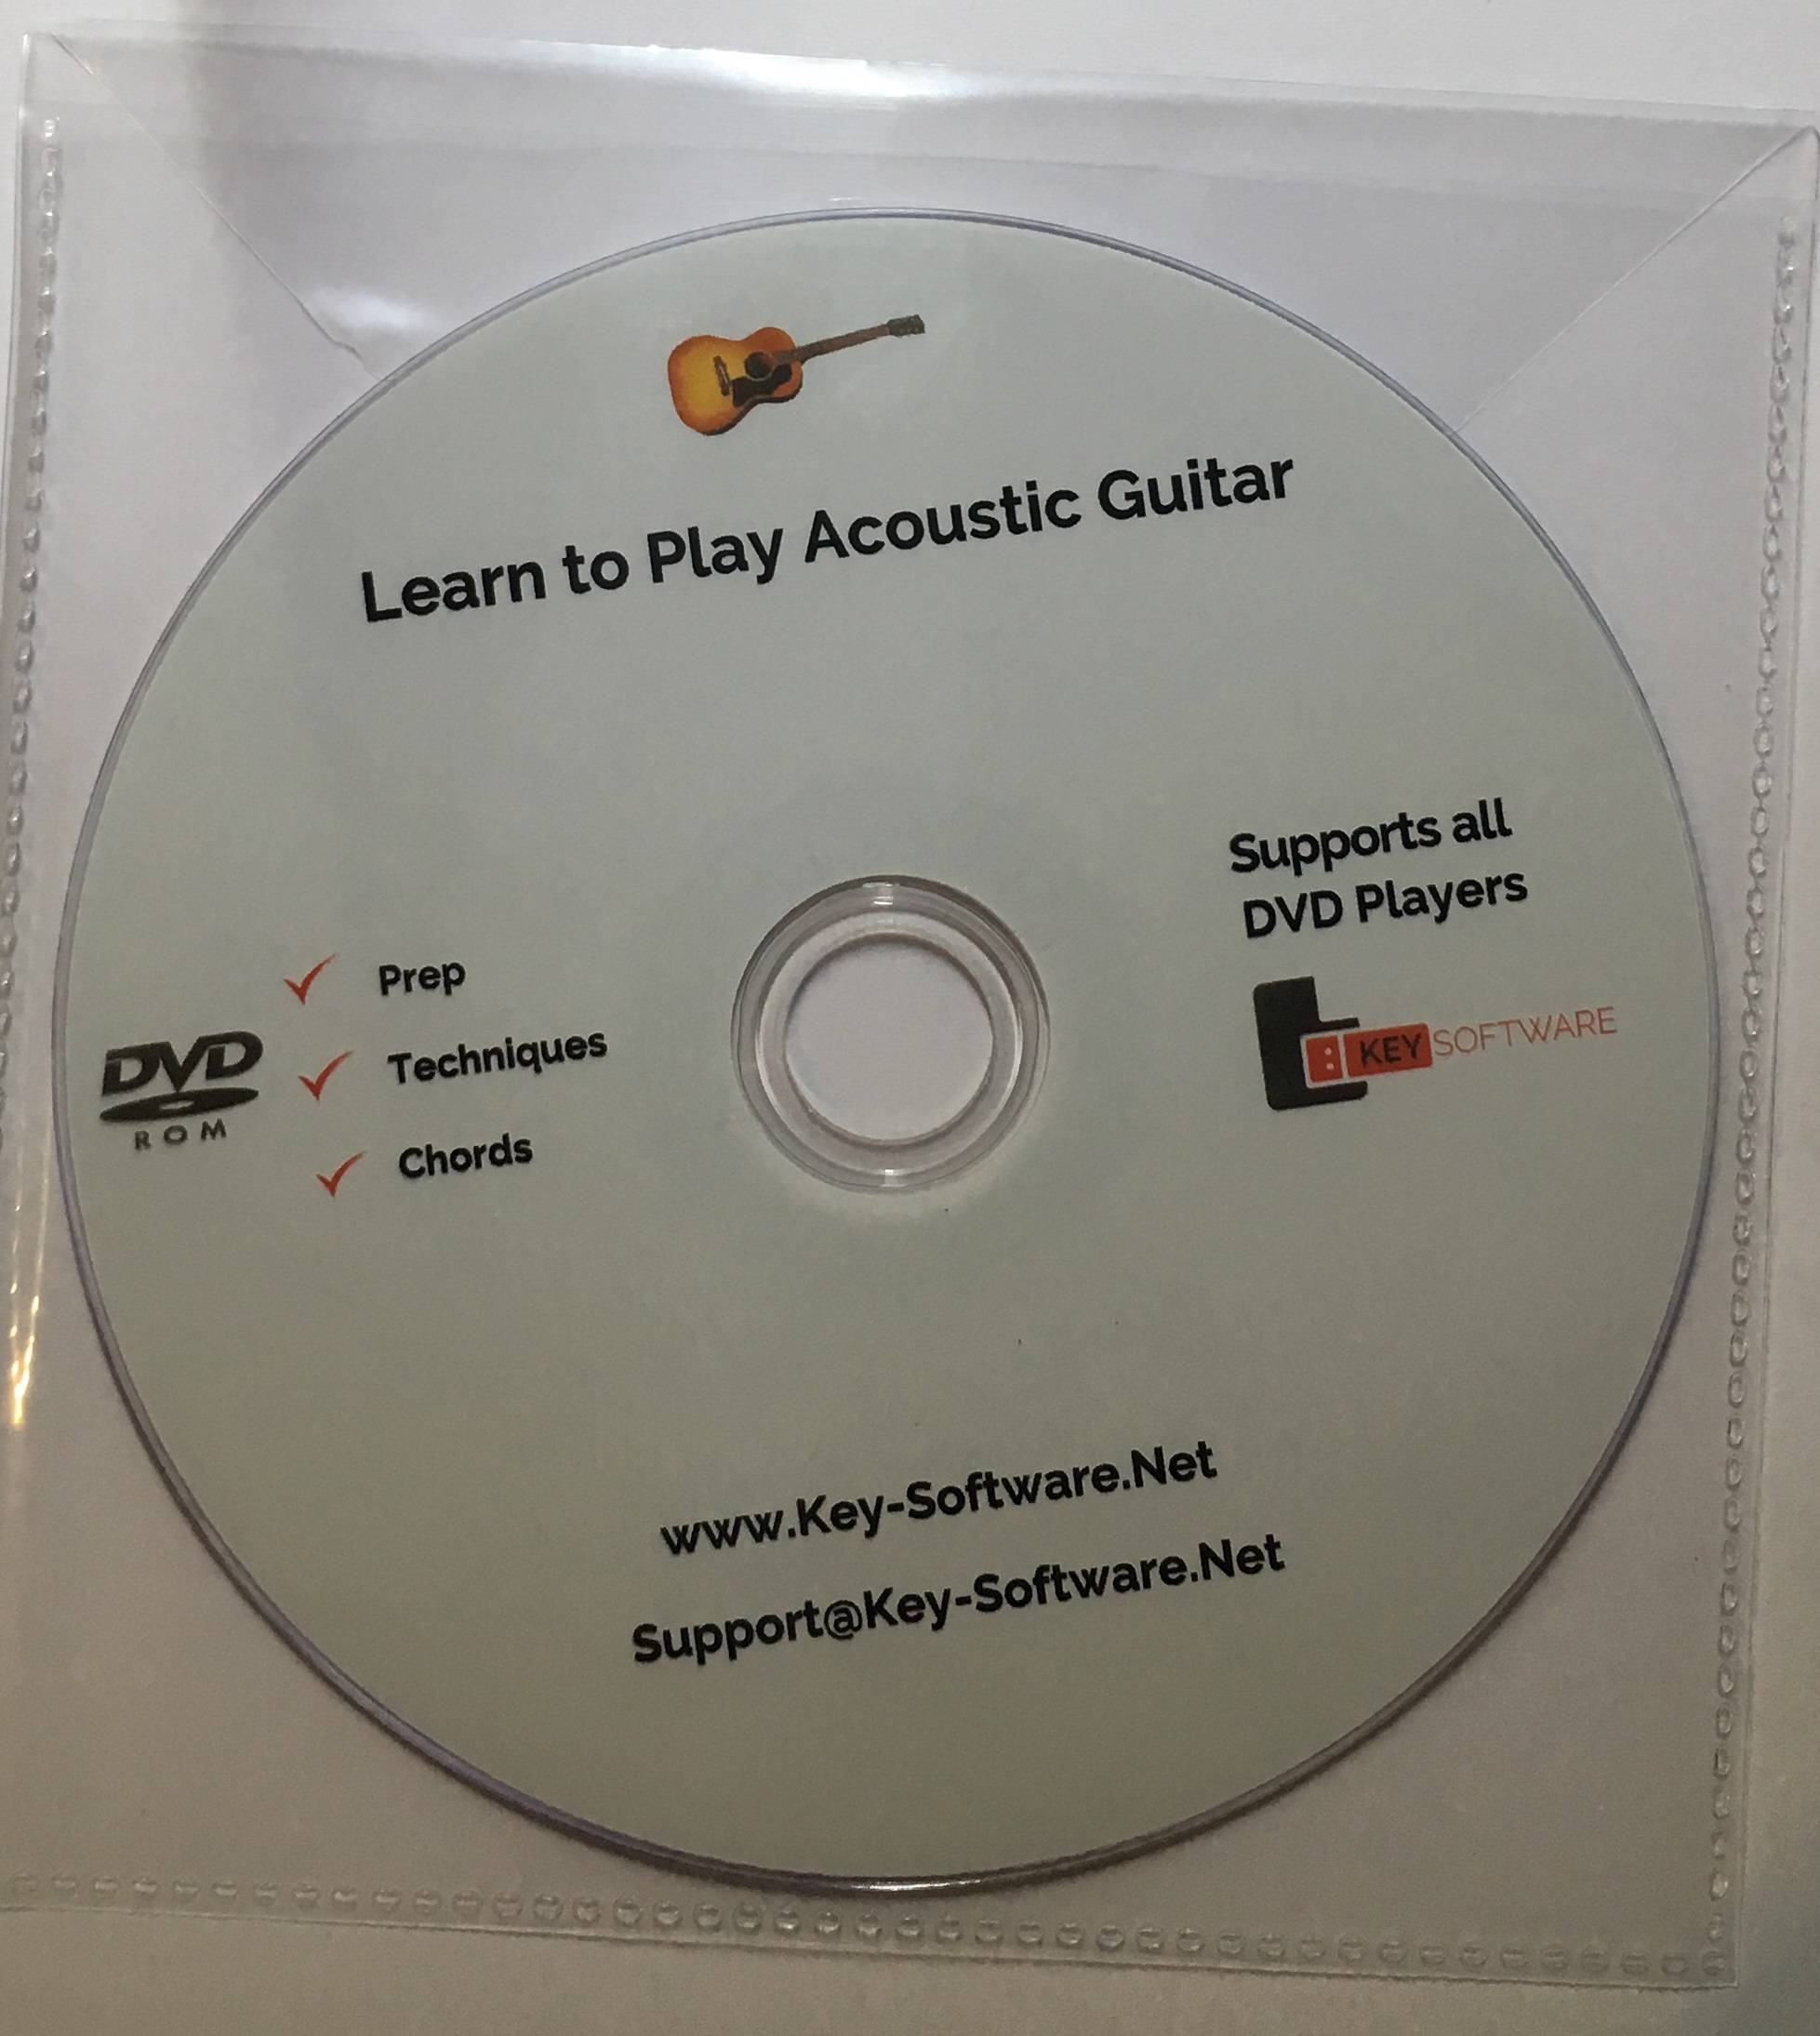 acoustic guitar dvd for teaching children kids learn how to play 4 beginners ebay. Black Bedroom Furniture Sets. Home Design Ideas